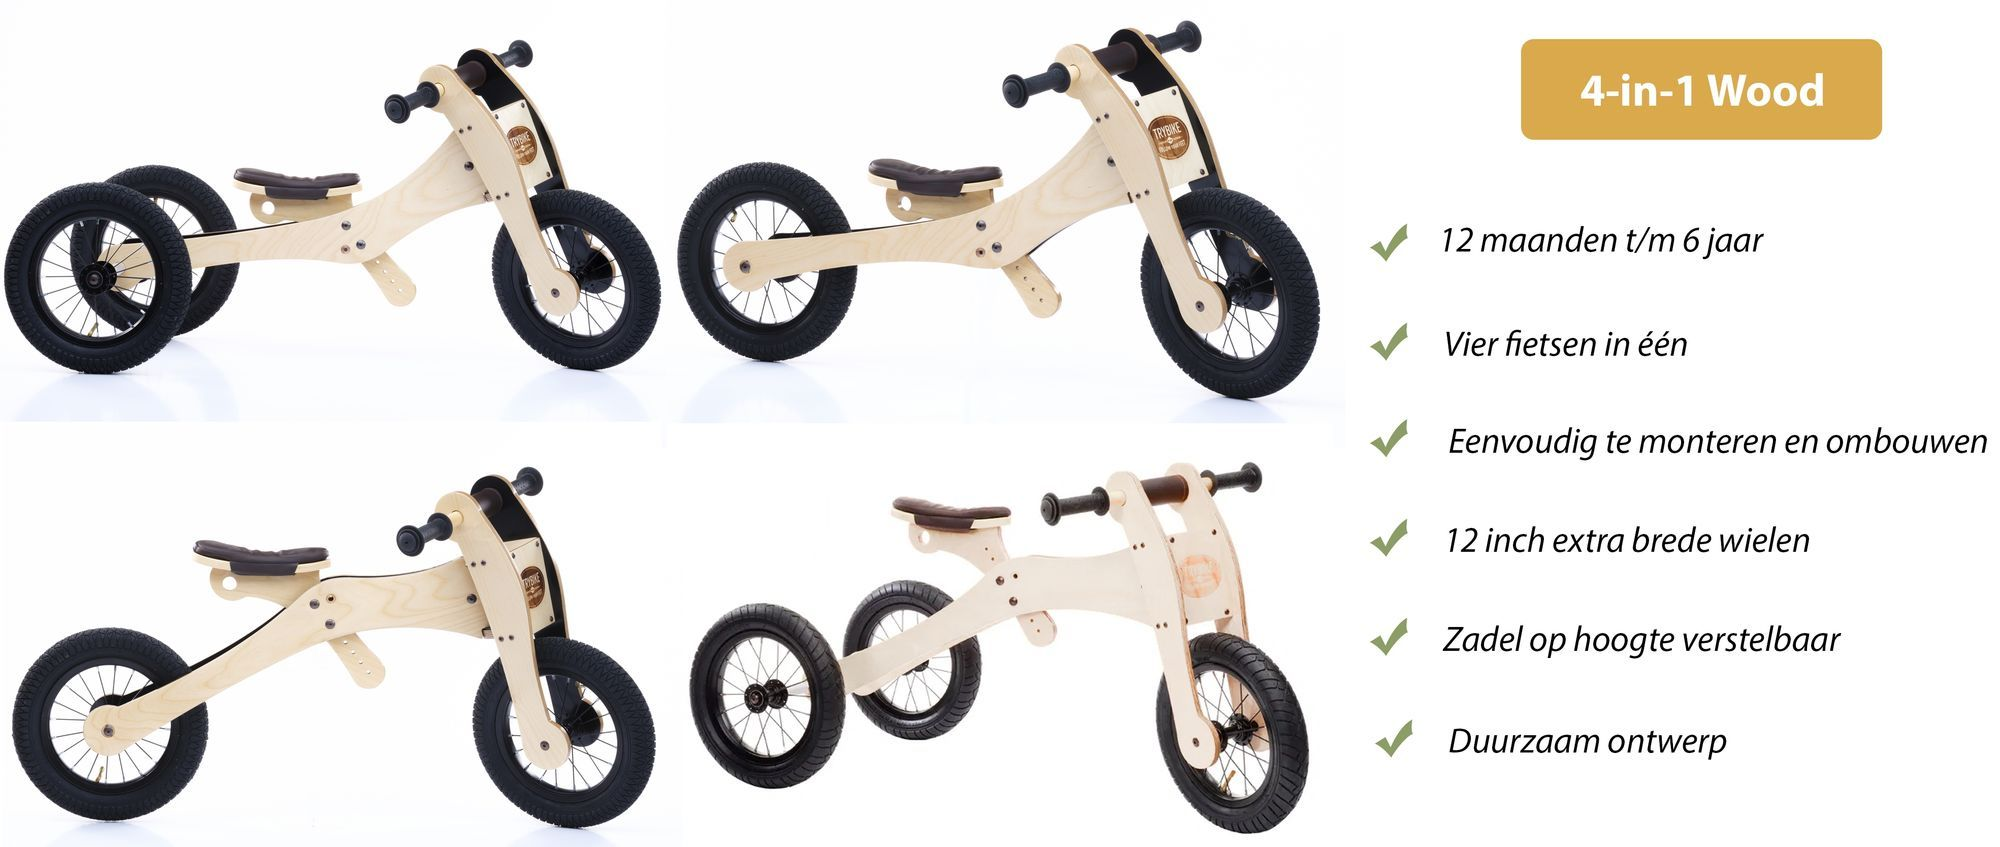 Trybike Wood 4-in-1